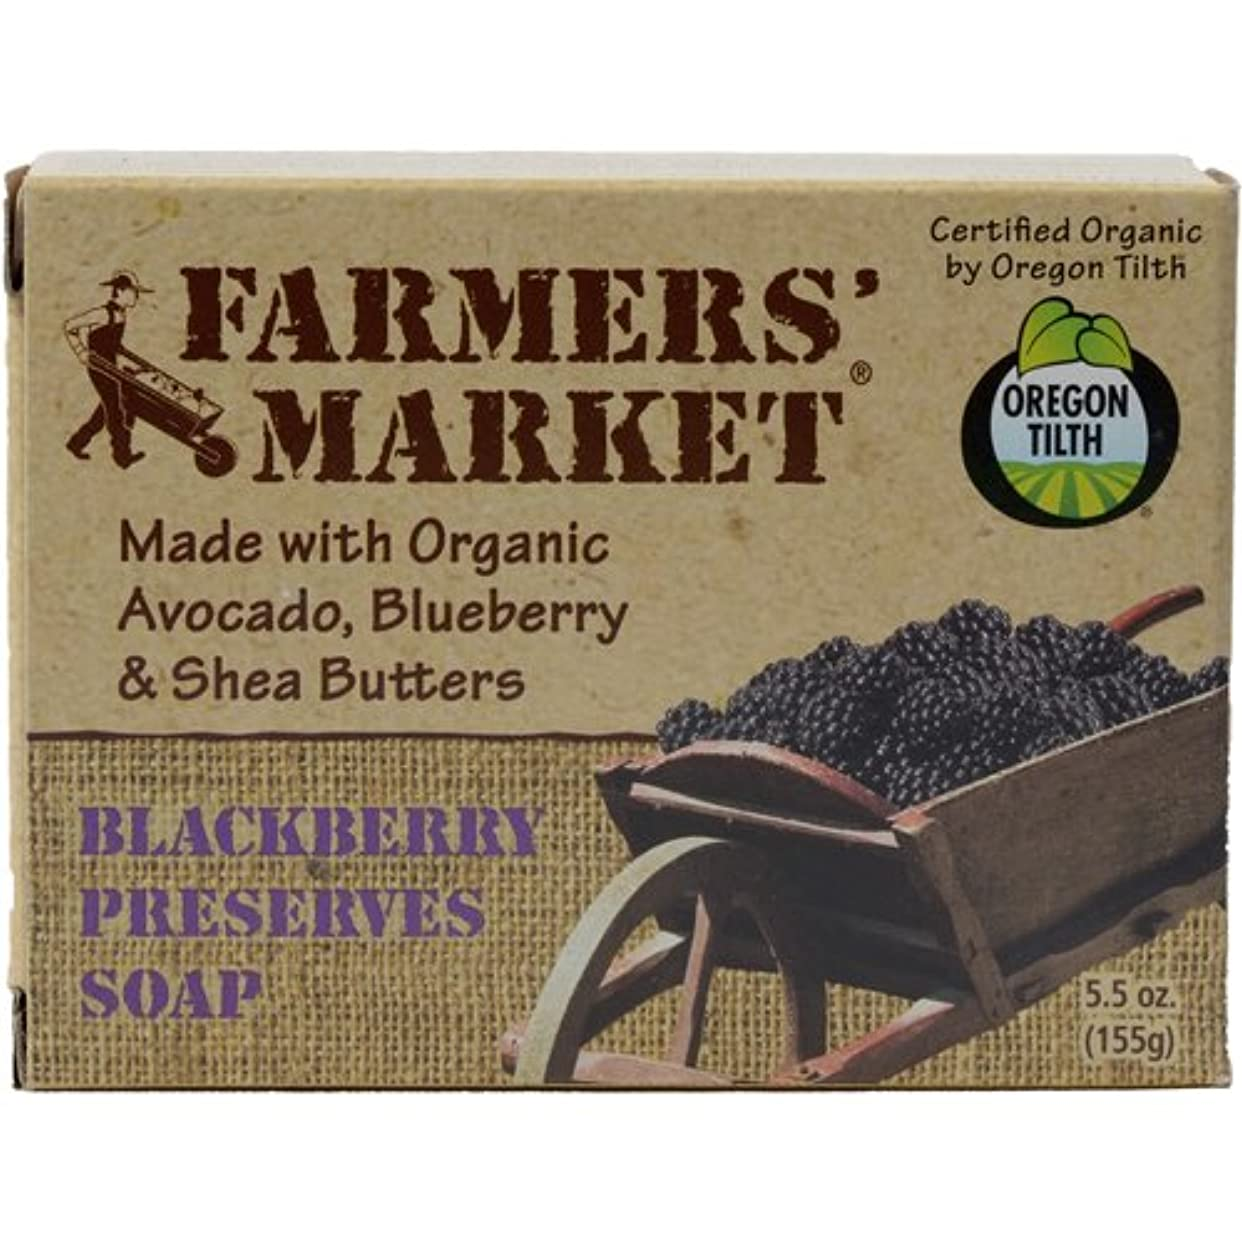 サスティーンアレキサンダーグラハムベル衝突Natural Bar Soap Blackberry Preserves - 5.5 oz by Farmer's Market